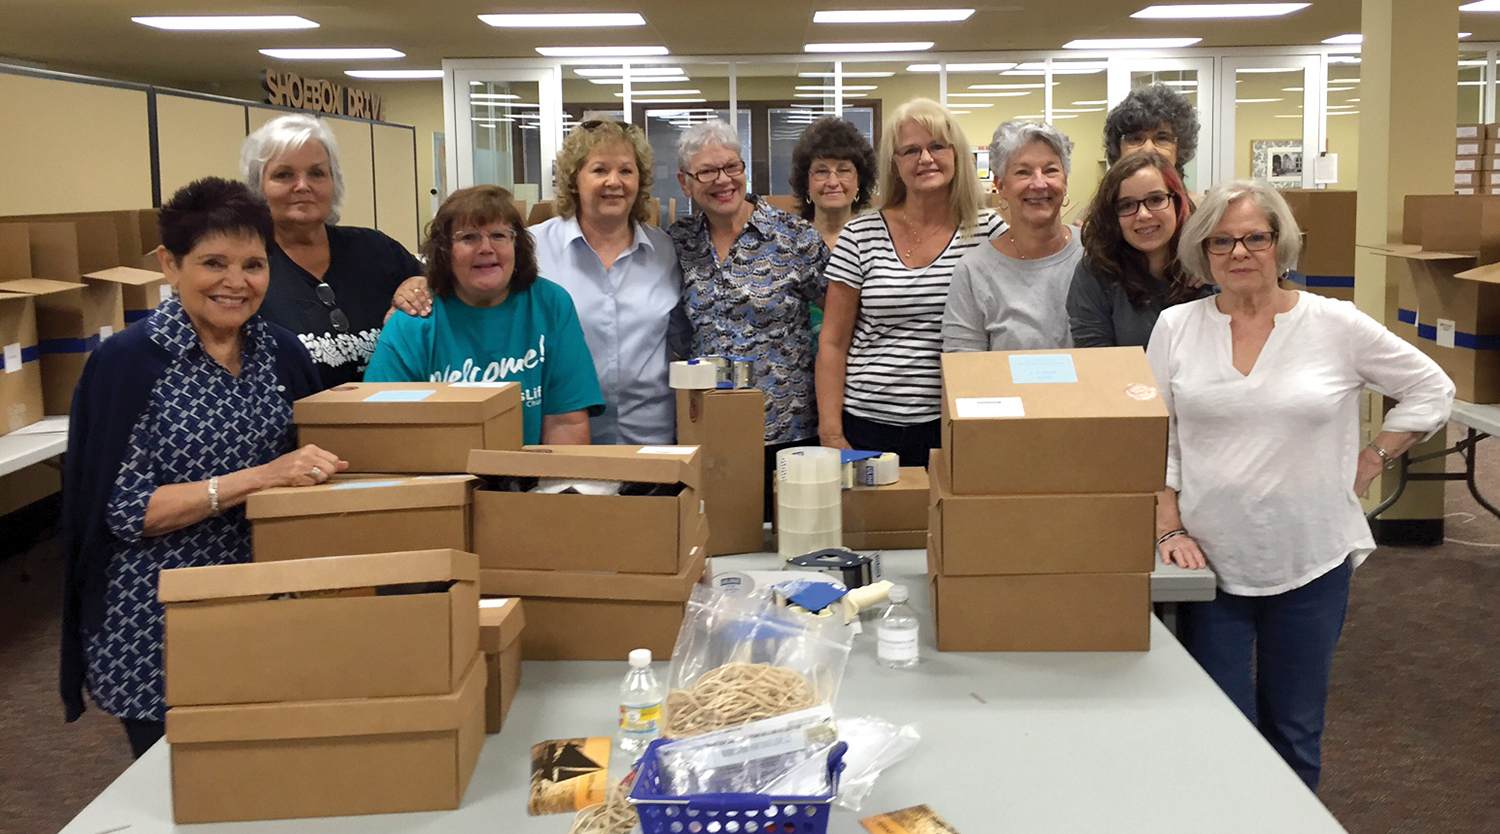 CrossLife Church in Oviedo, Florida, sent volunteers to serve during our Christmas Shoebox Drive.